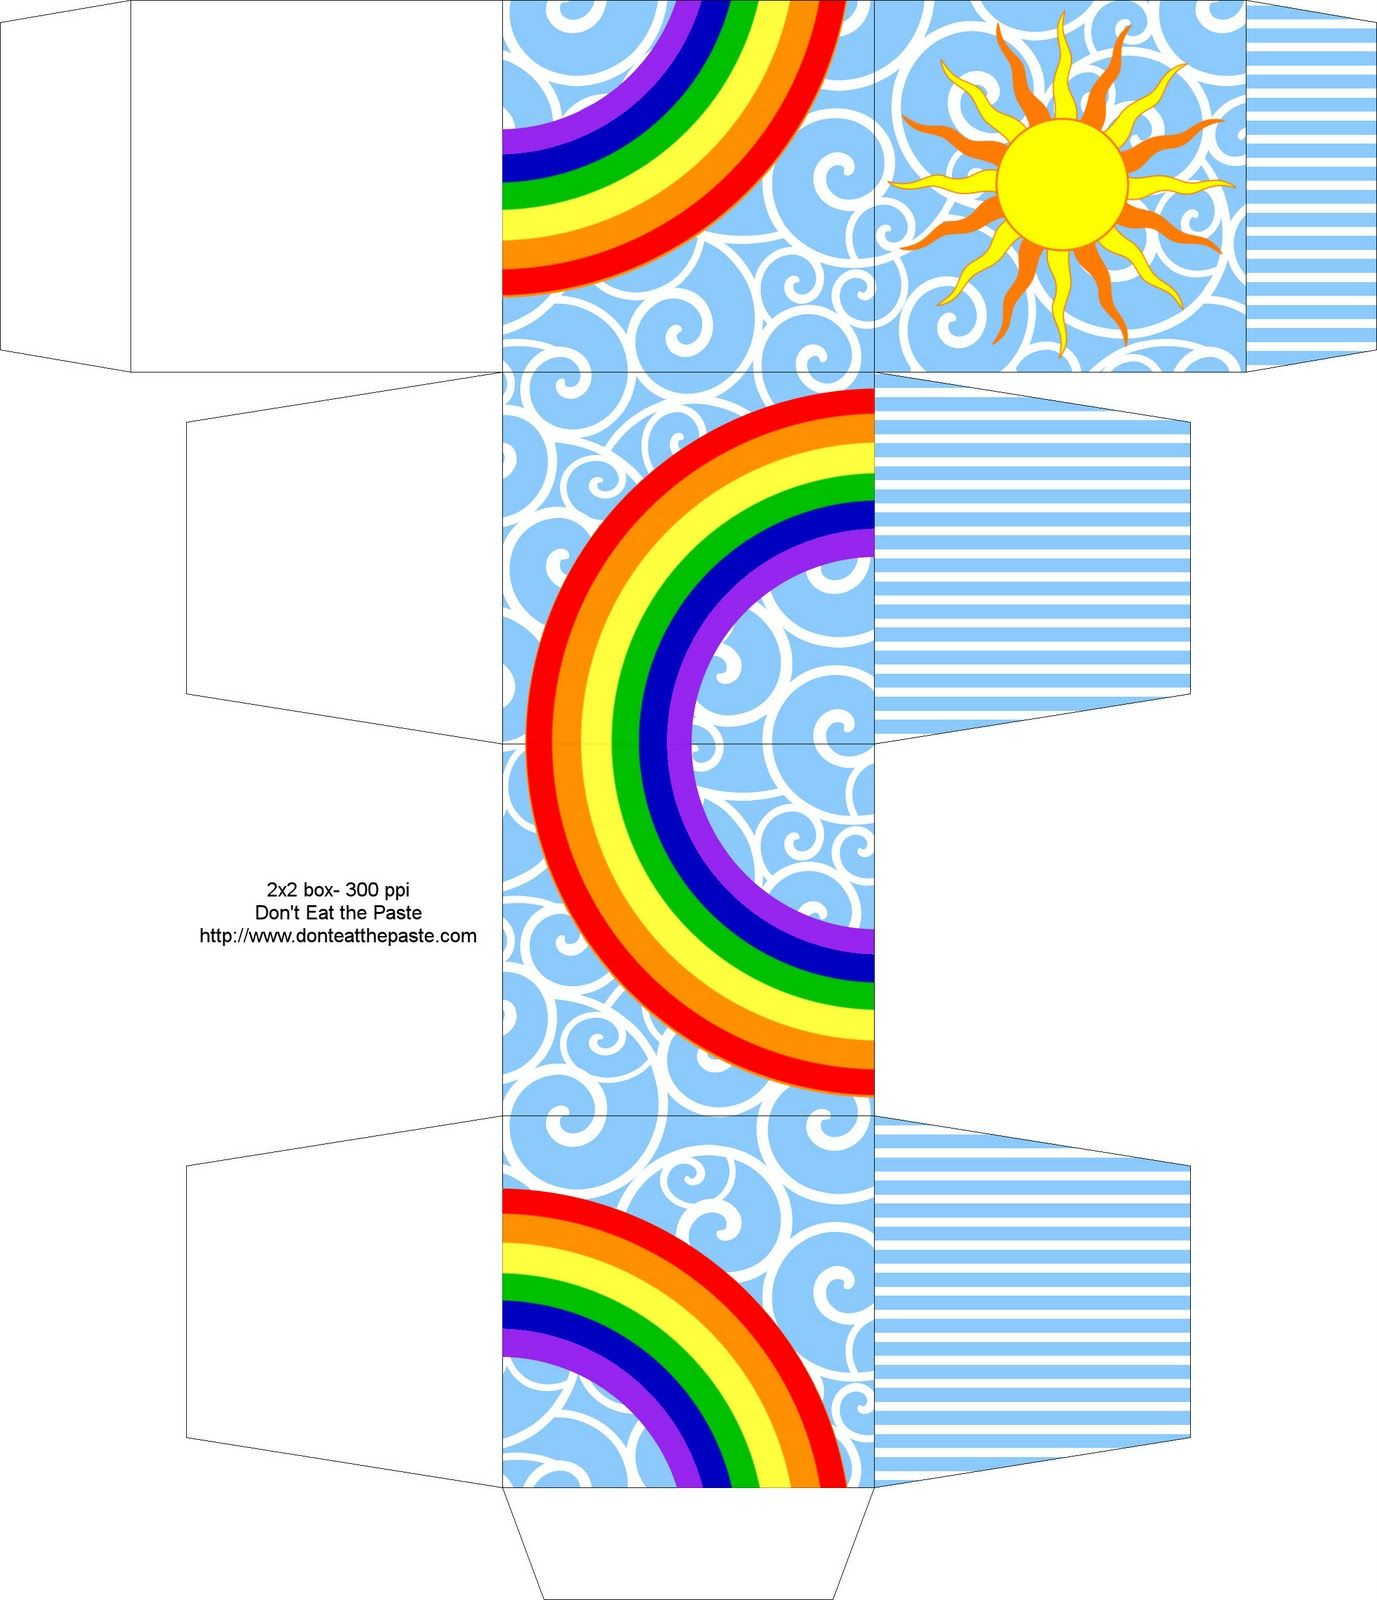 rainbow box  sun   spiral   free box templates to print for gift boxes  wedding favours  kids